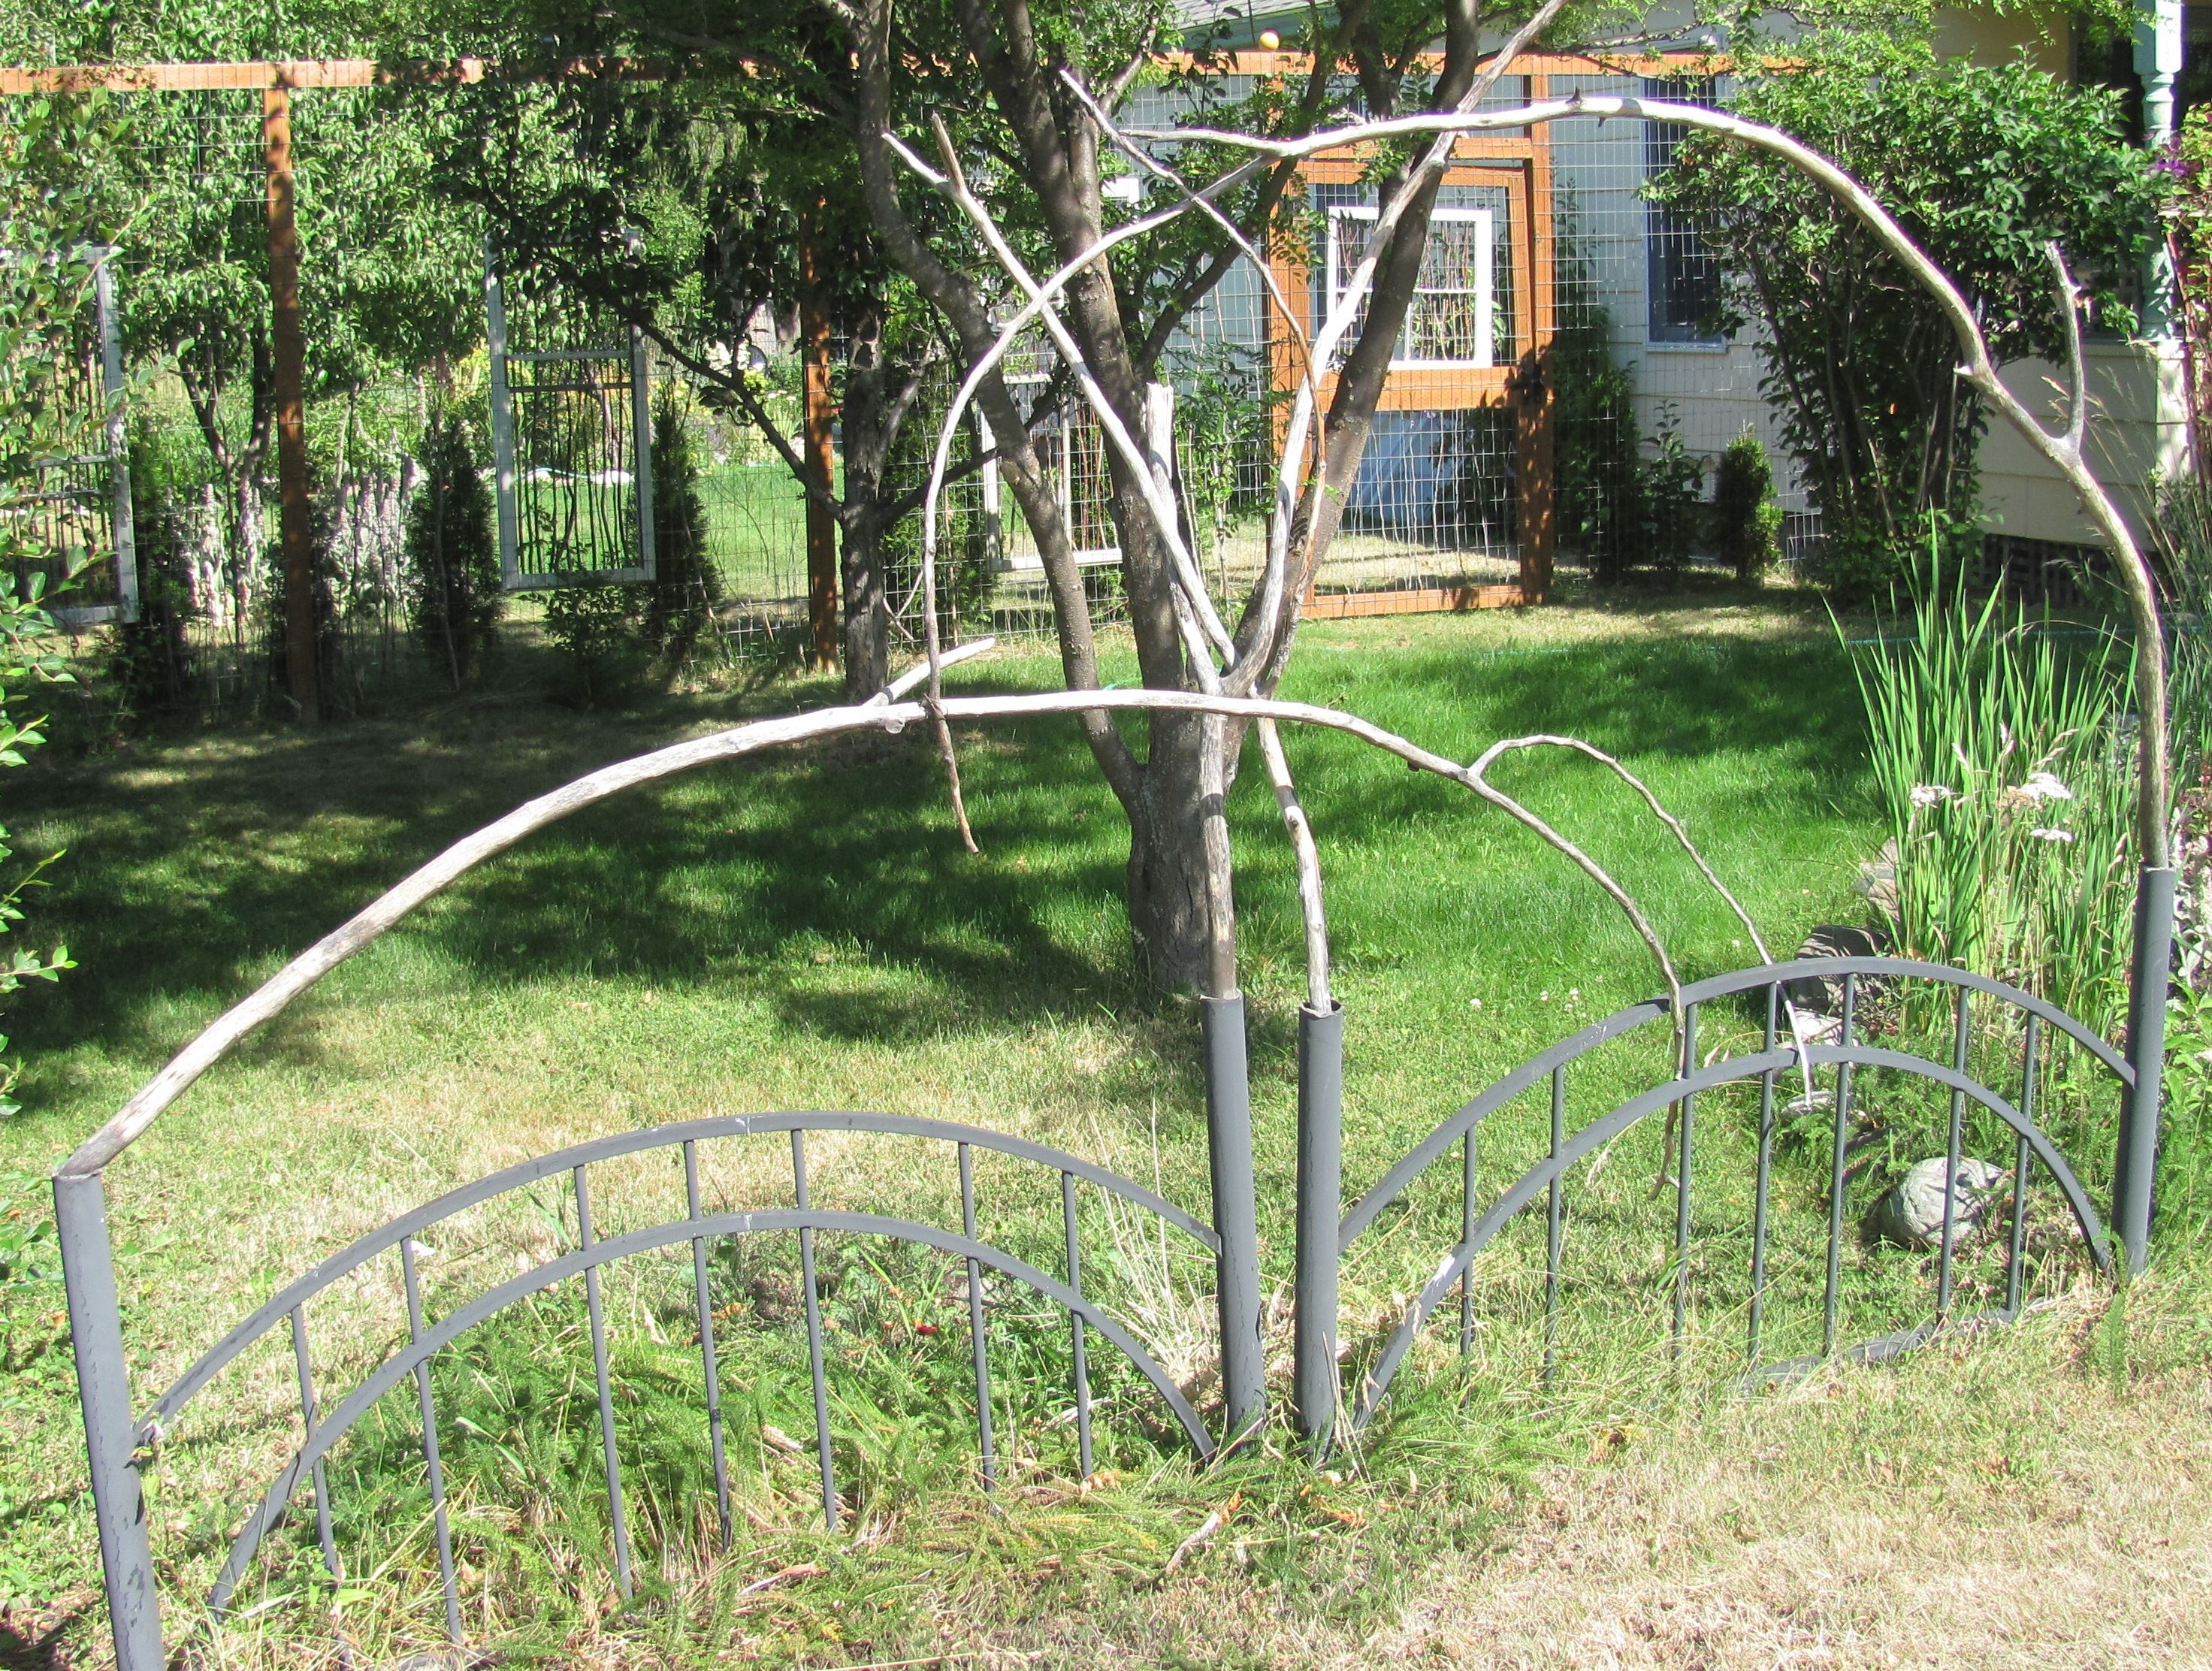 Willow Fence - Home  Garden - Compare Prices, Reviews and Buy at